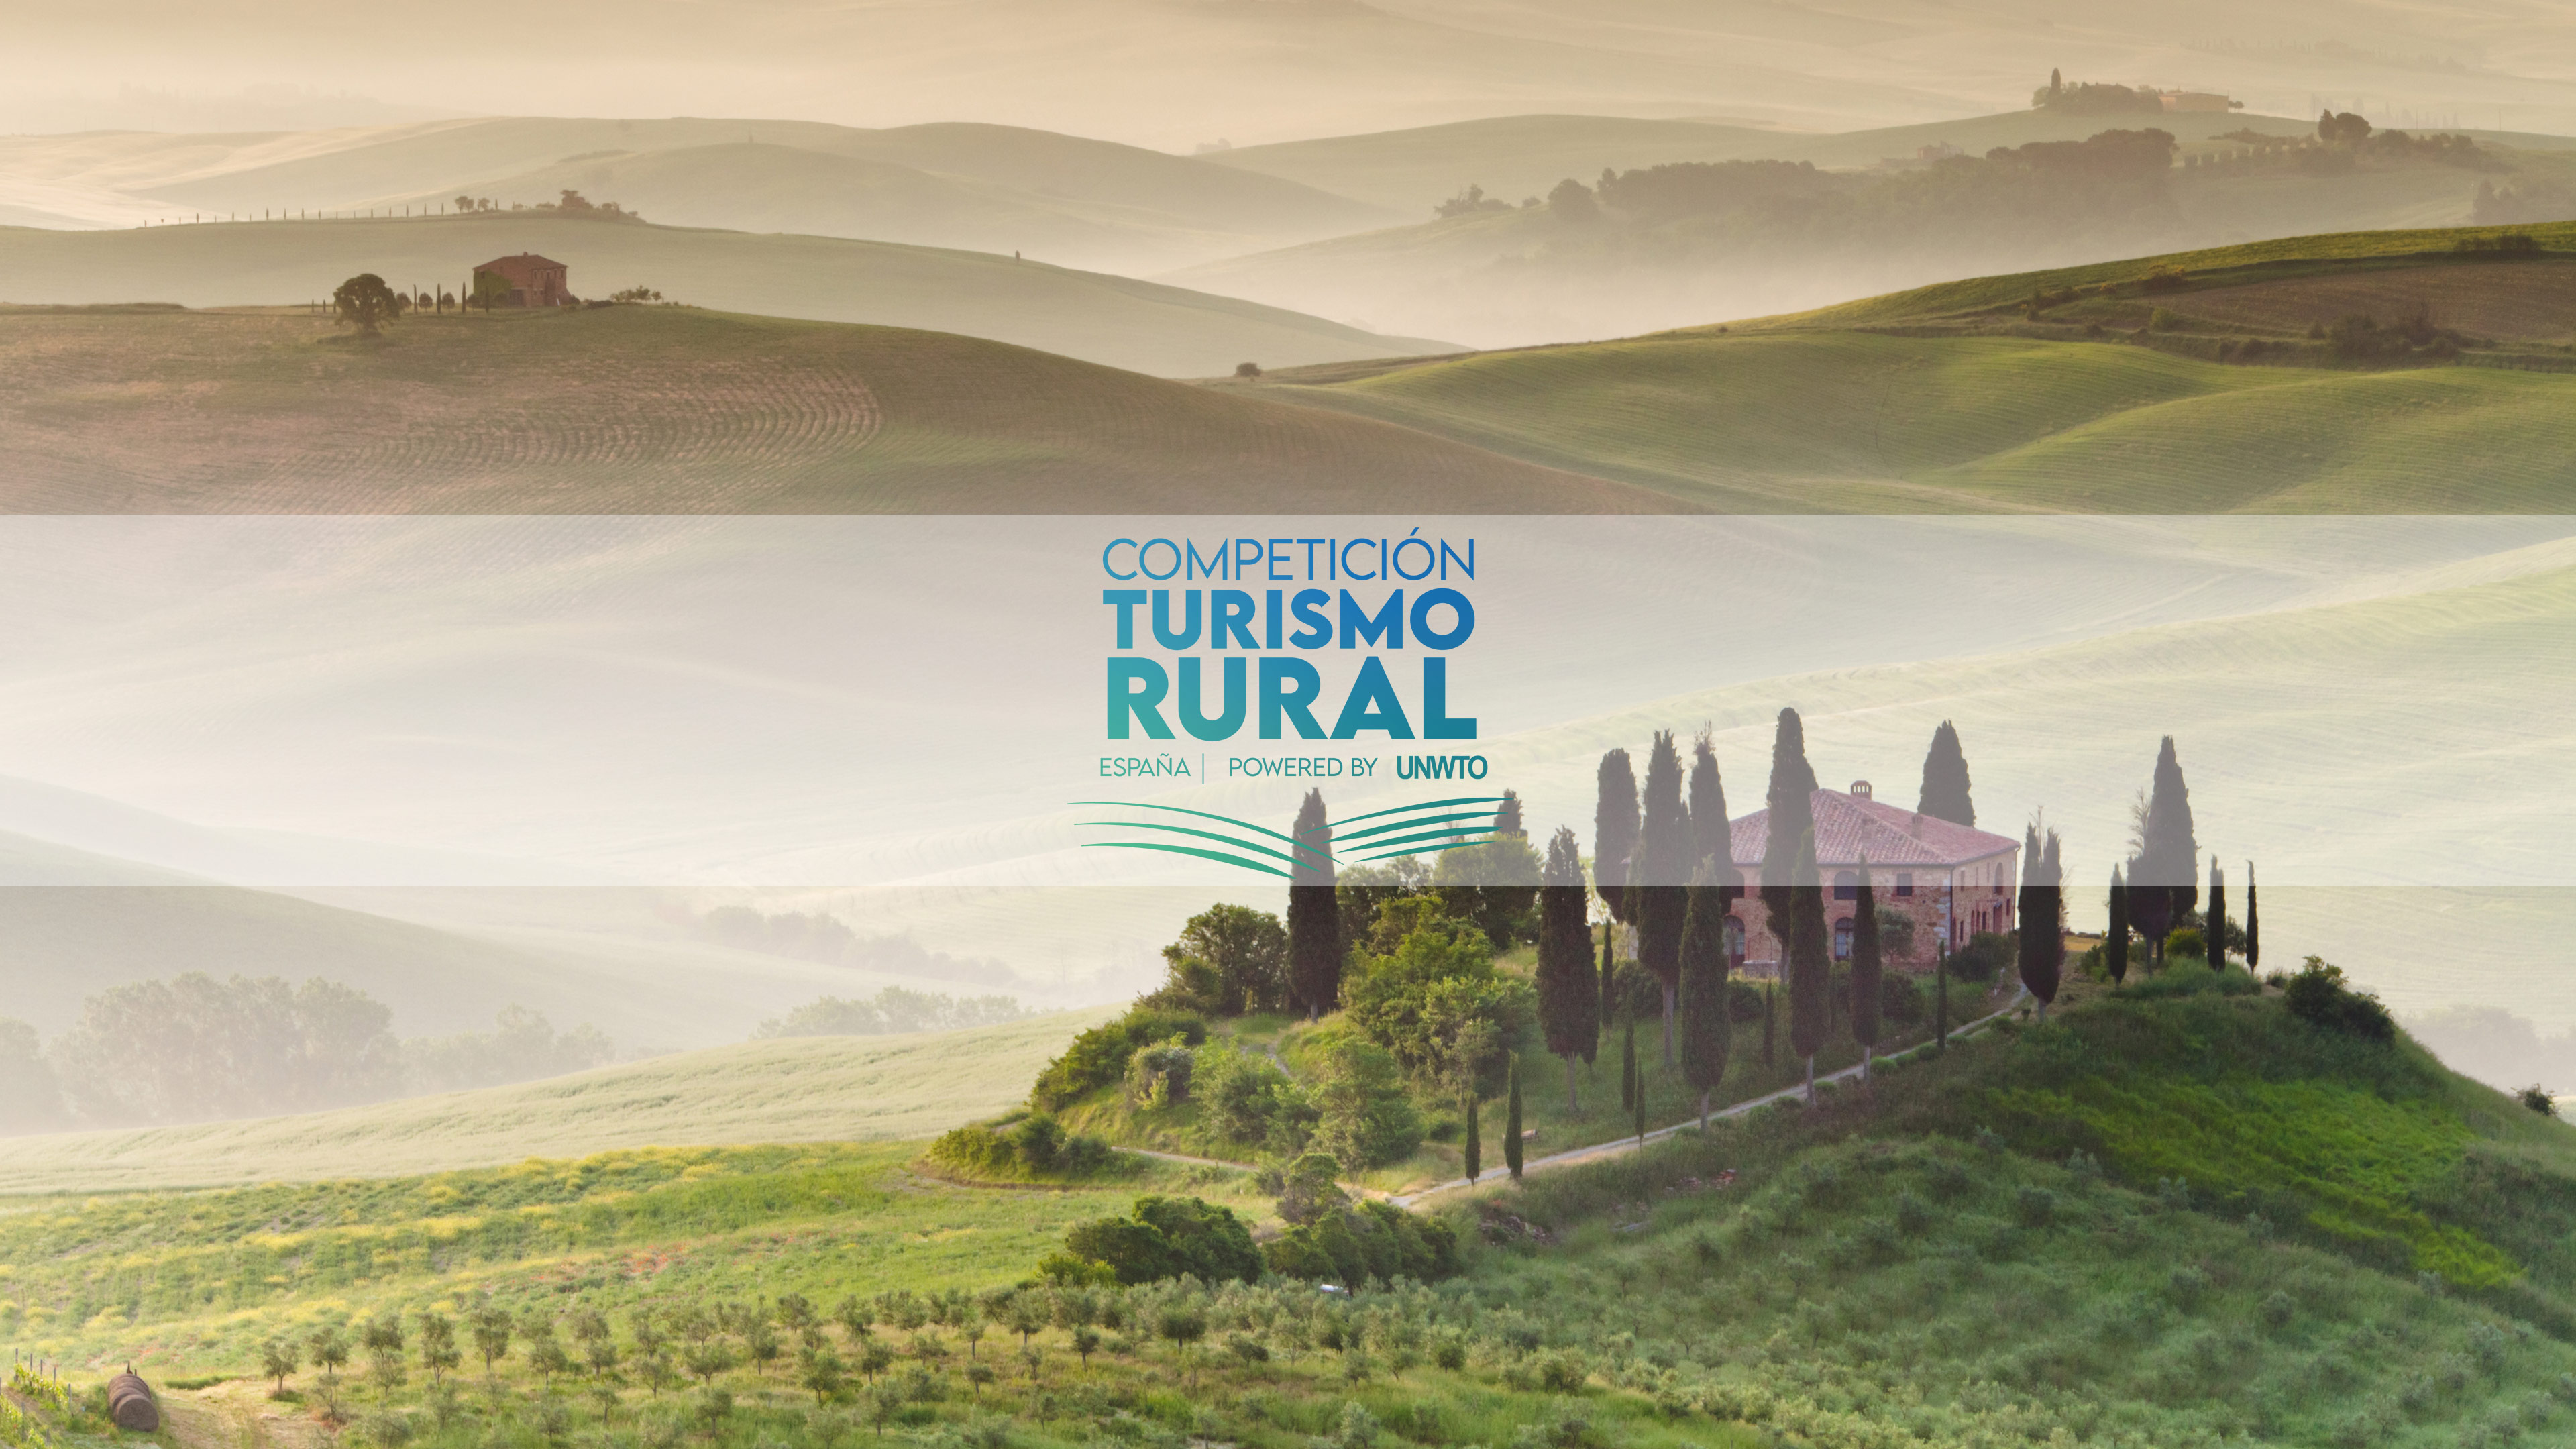 Rural Tourism Competition